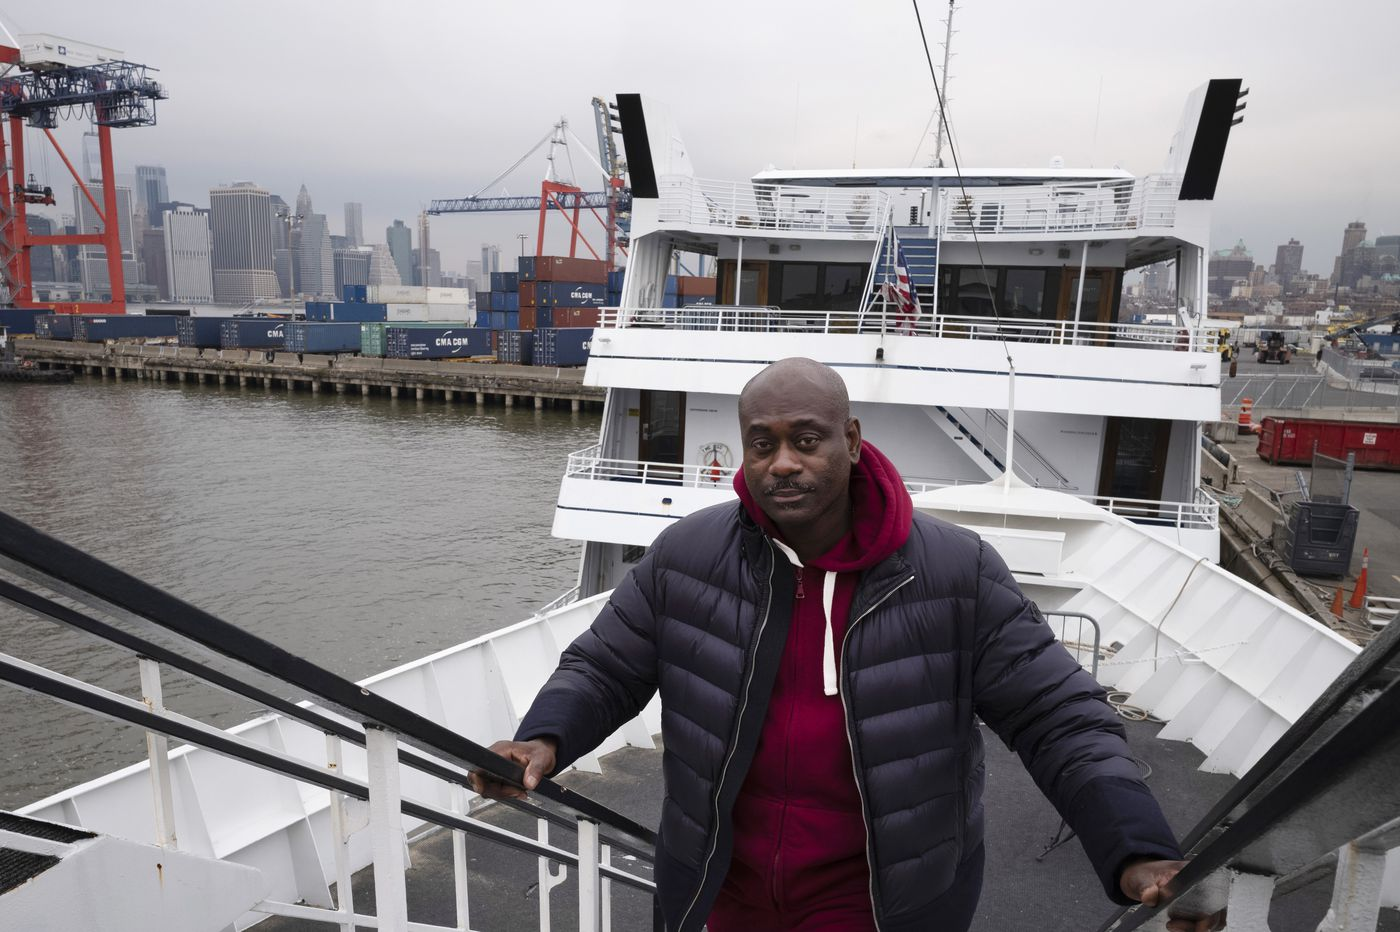 Booze cruise battle: Booted from NYC dock, owner sees racism